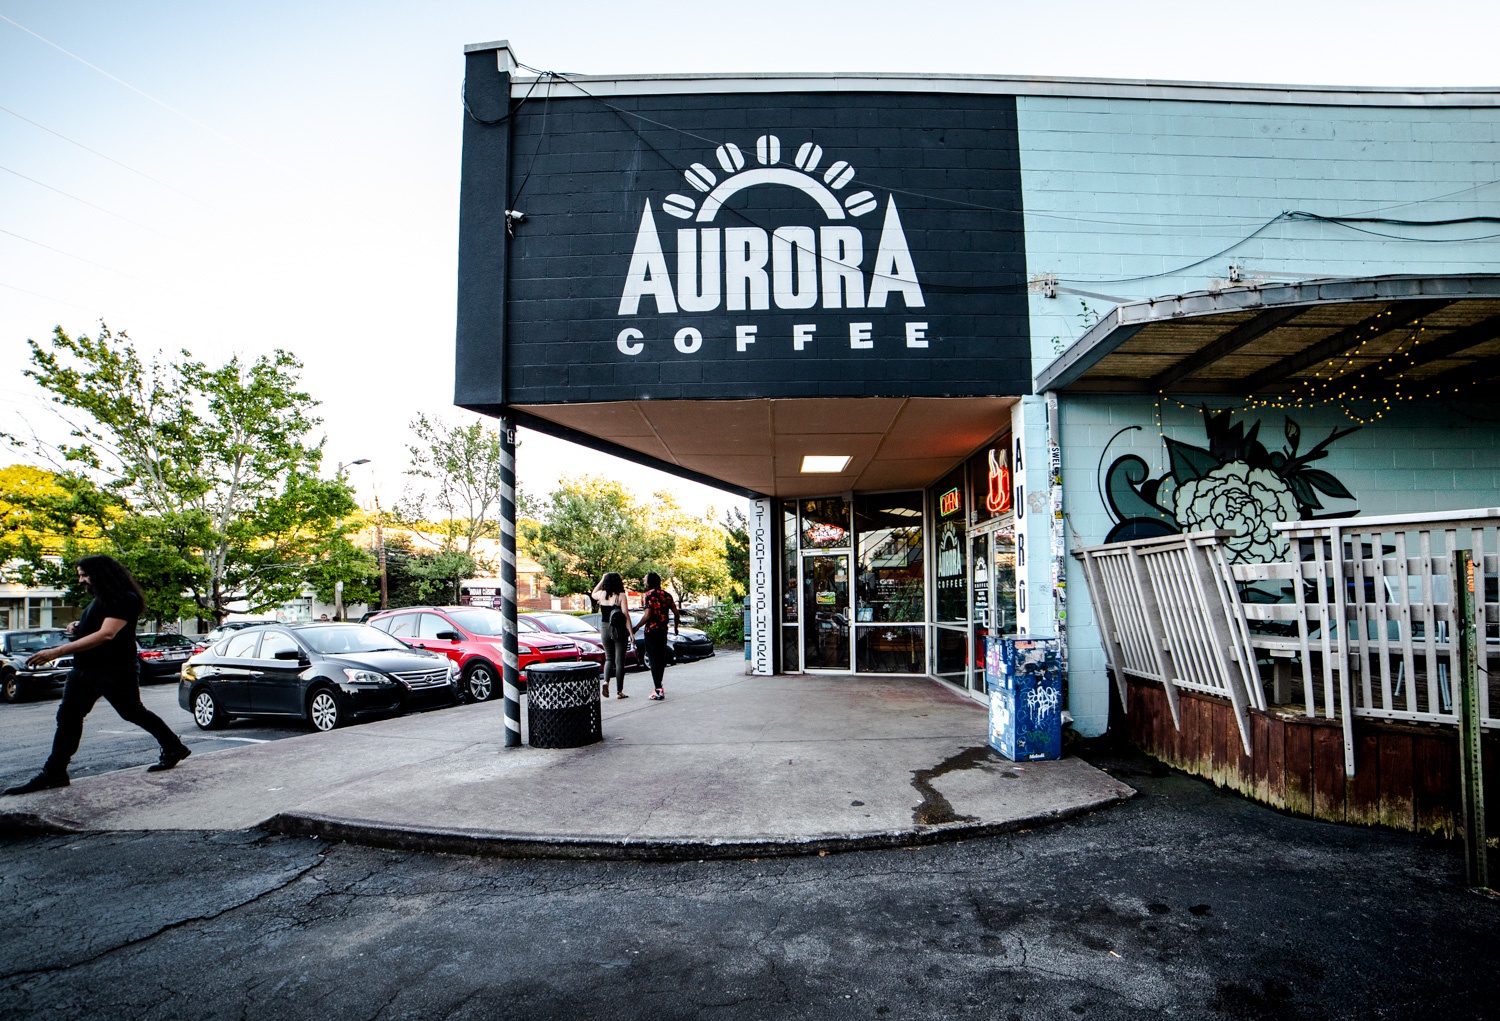 Exterior side of Aurora Coffee in the Little Five Points neighborhood of Atlanta, GA.